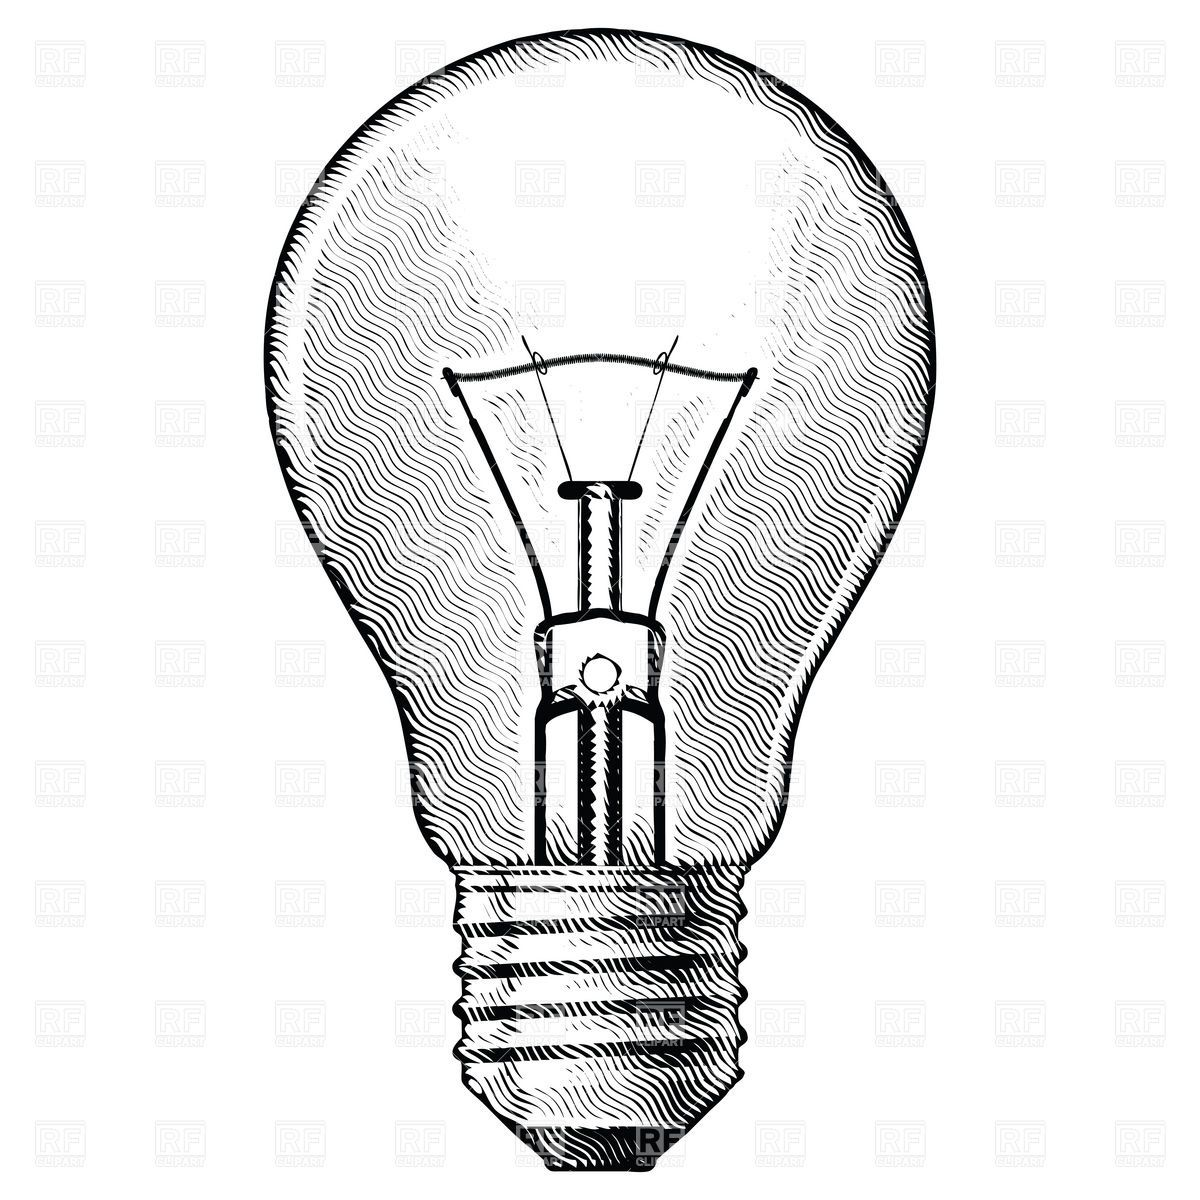 Light Bulbs Drawings: Buy Figure bulbs by Dvarg on GraphicRiver. Figure bulbs. Illustration on  white background. vintage light bulb drawing ...,Lighting